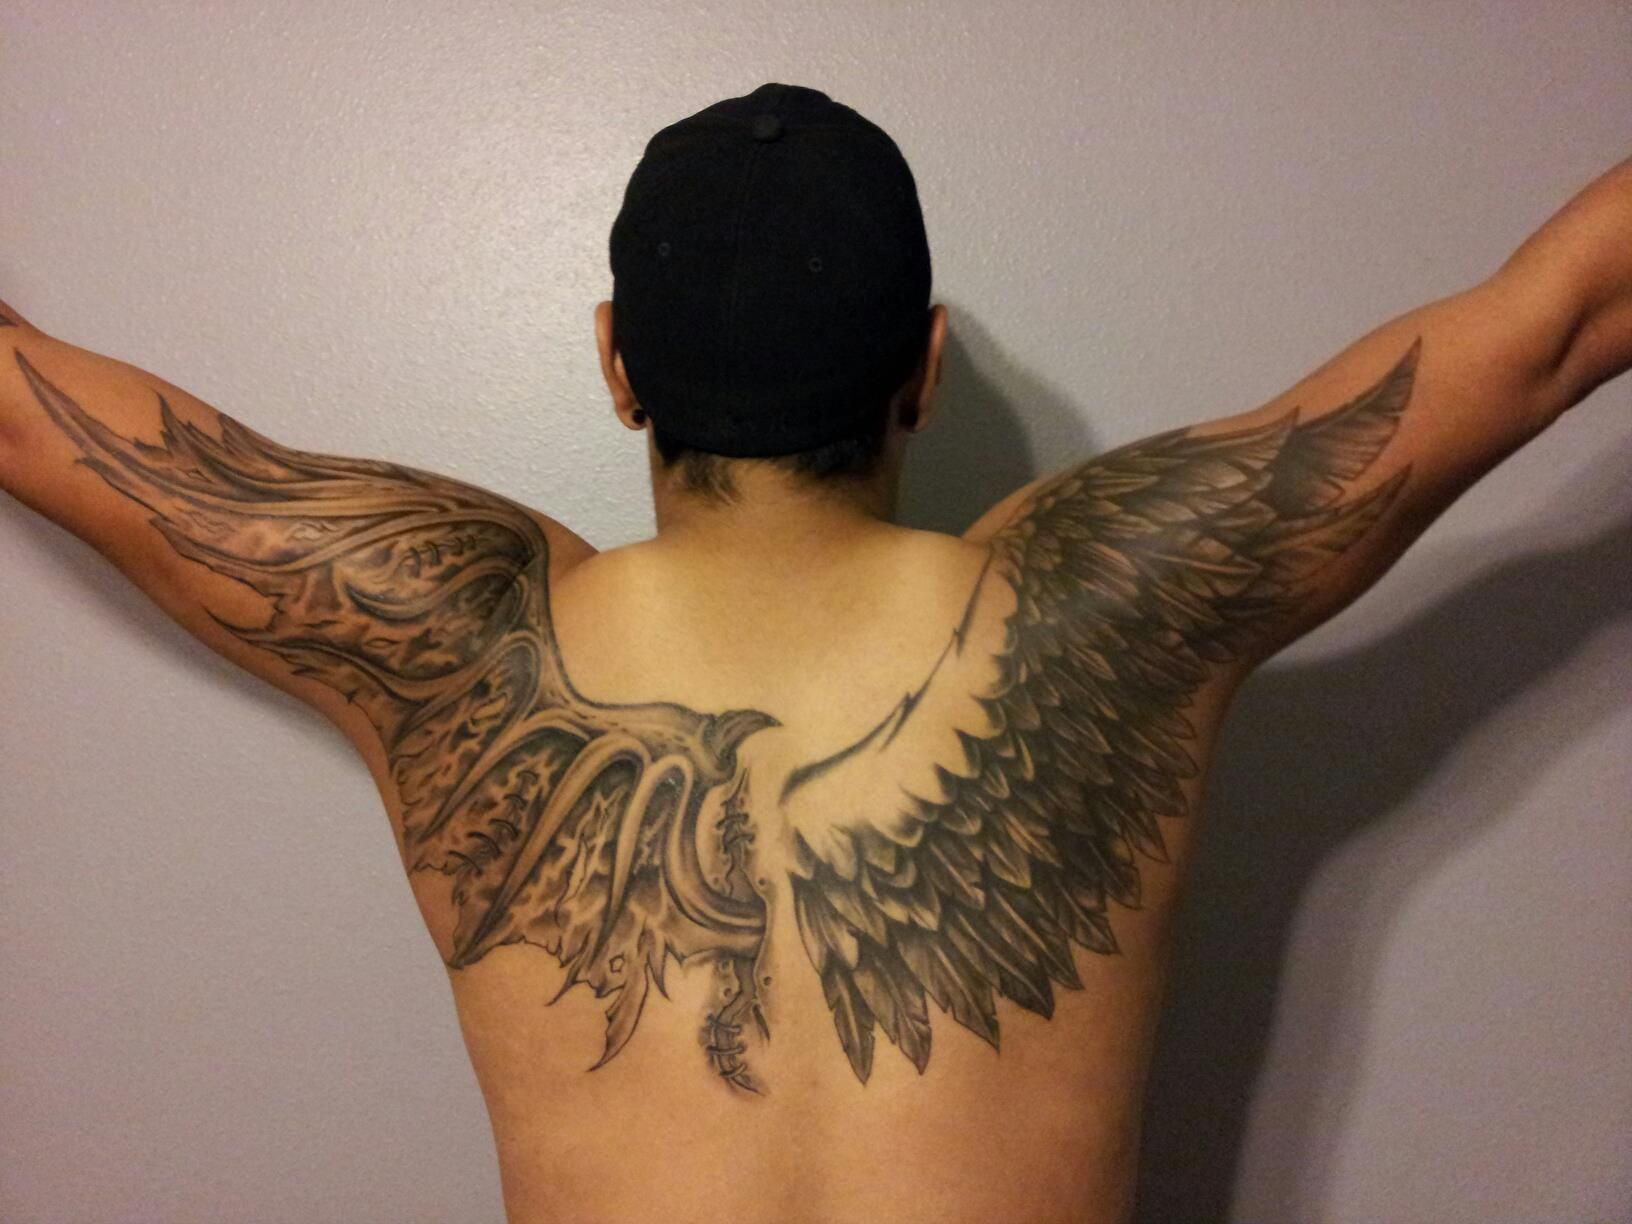 dragon wings tattoo - Google Search | Tattoos | Pinterest ...